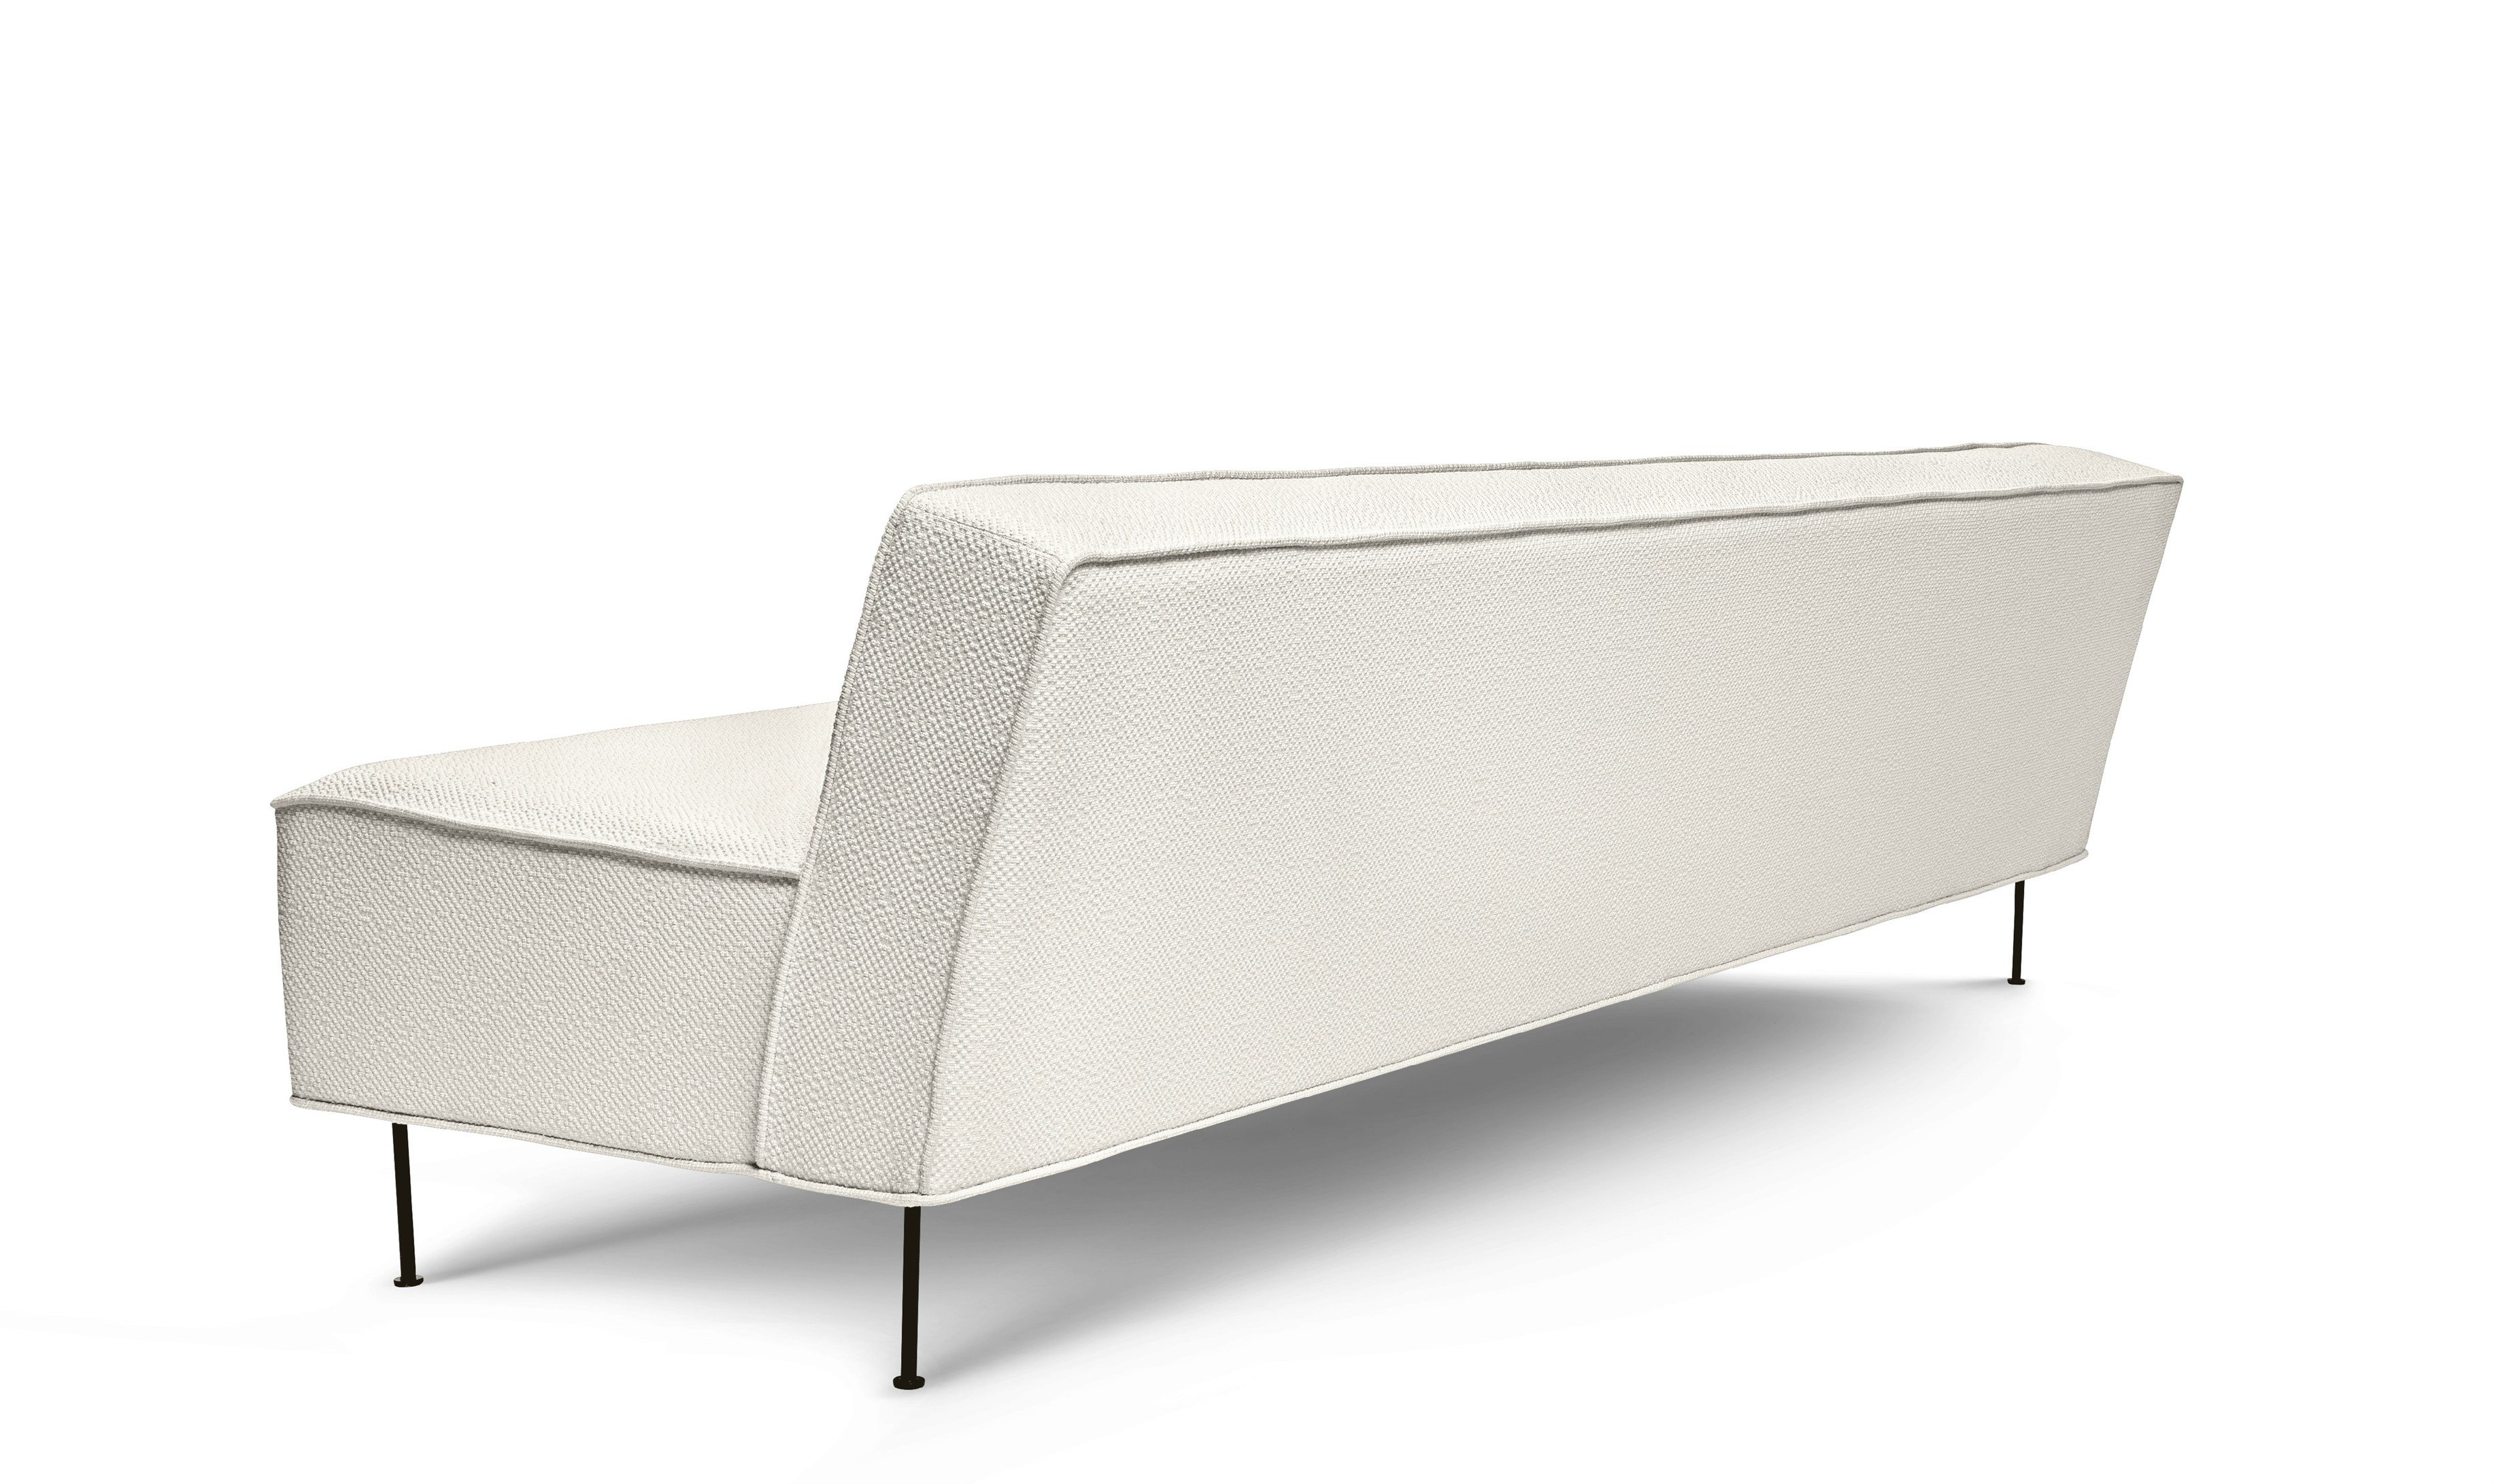 Timeless Design: Modern Line Sofa By Greta Magnusson